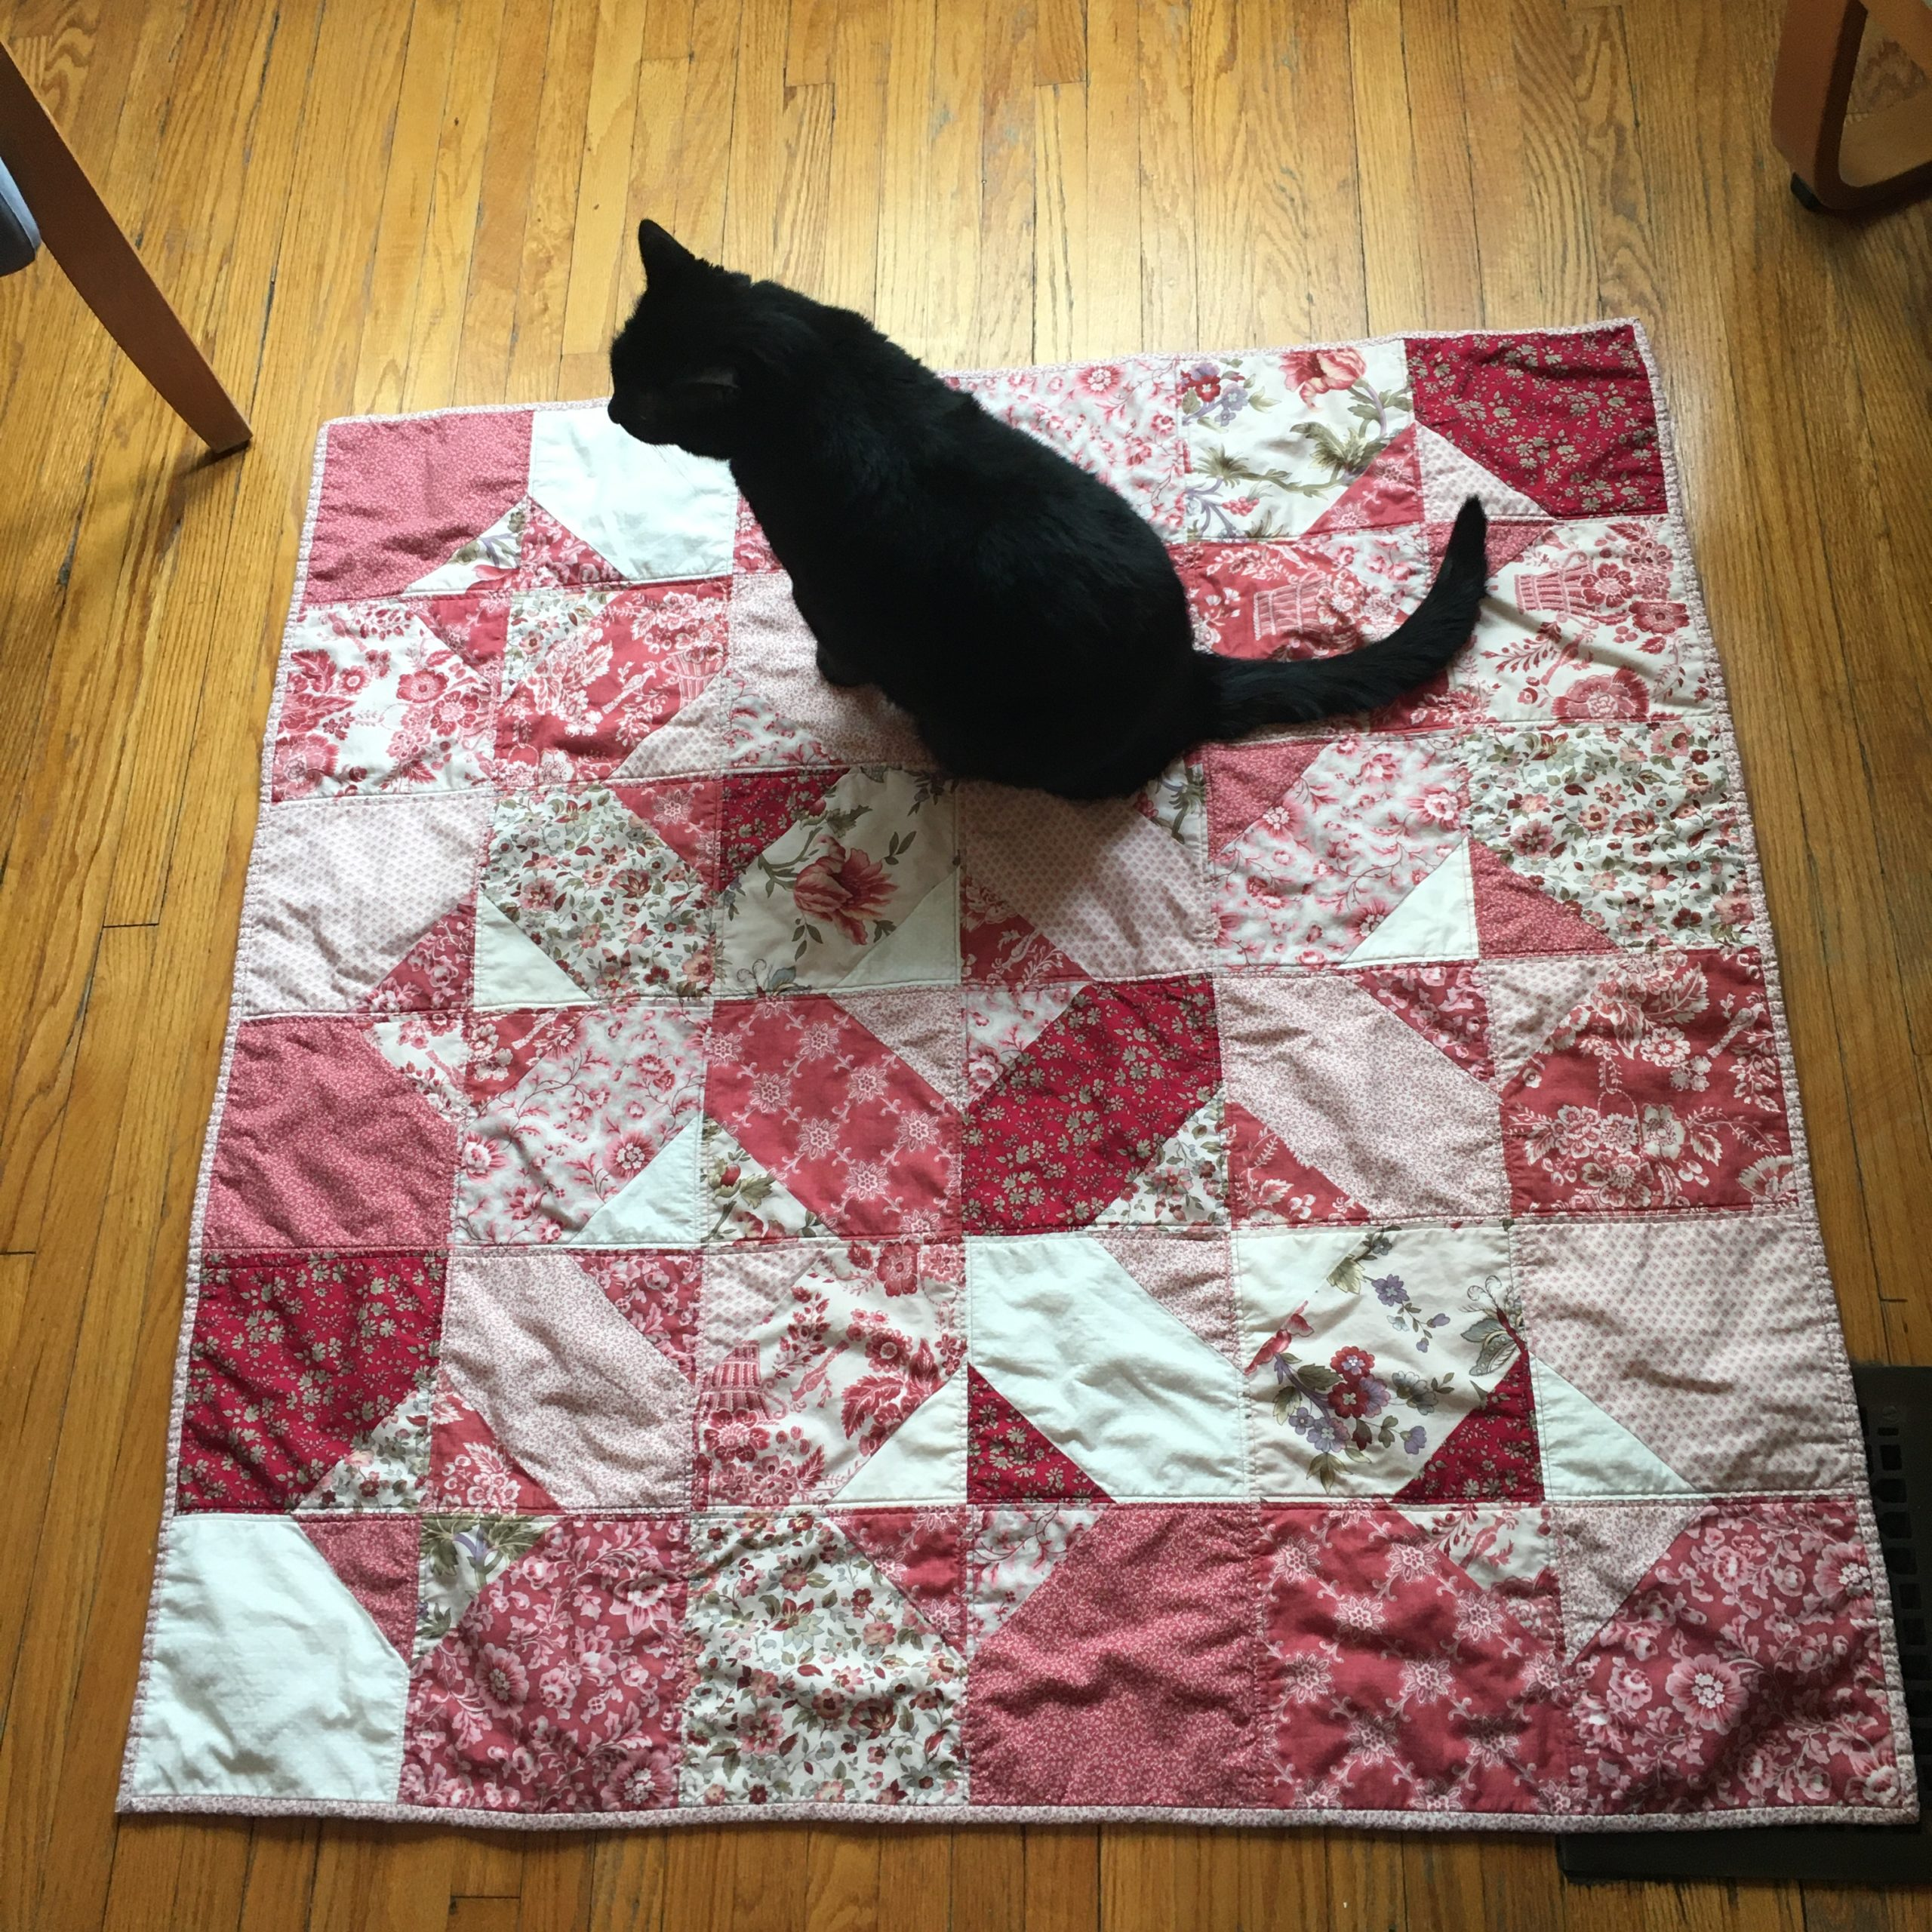 Finished quilt, with cat